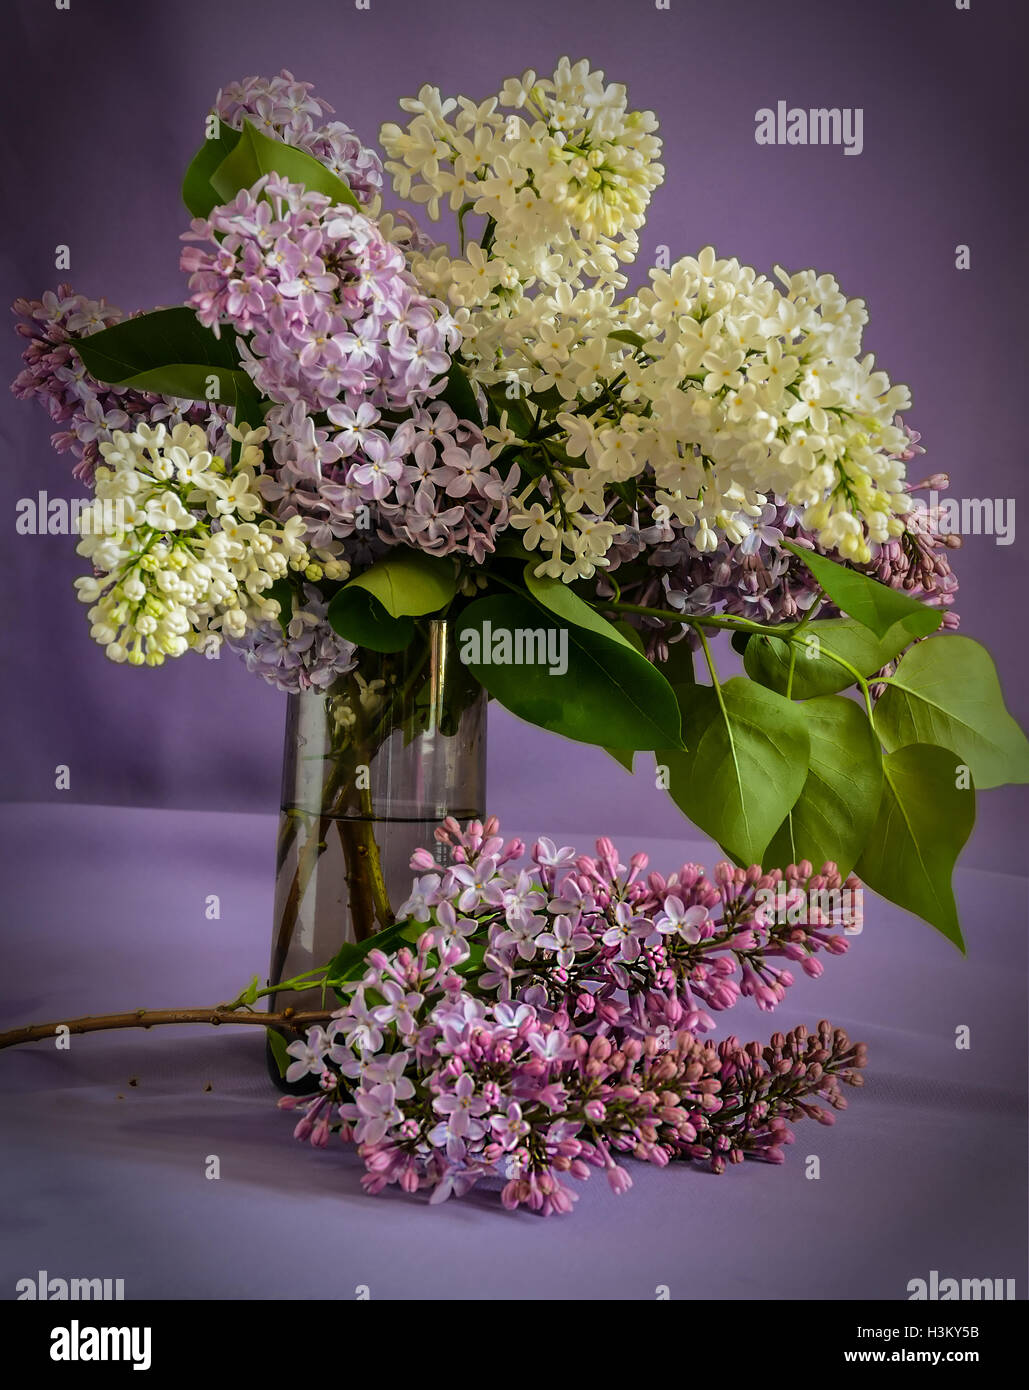 Spring bouquet of lilacs in a vase. - Stock Image